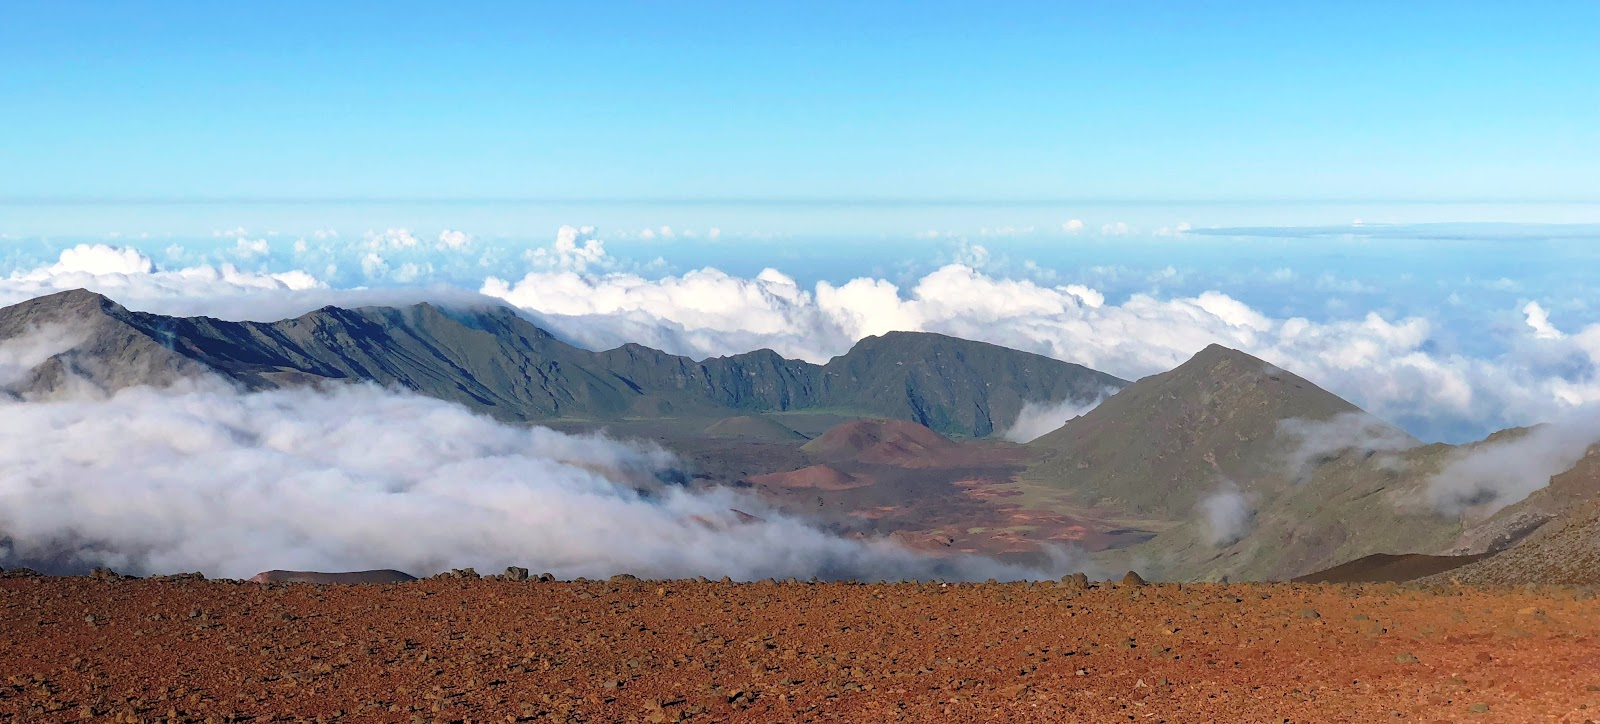 Cycling Haleakala Volcano - crater, clouds and blue sky